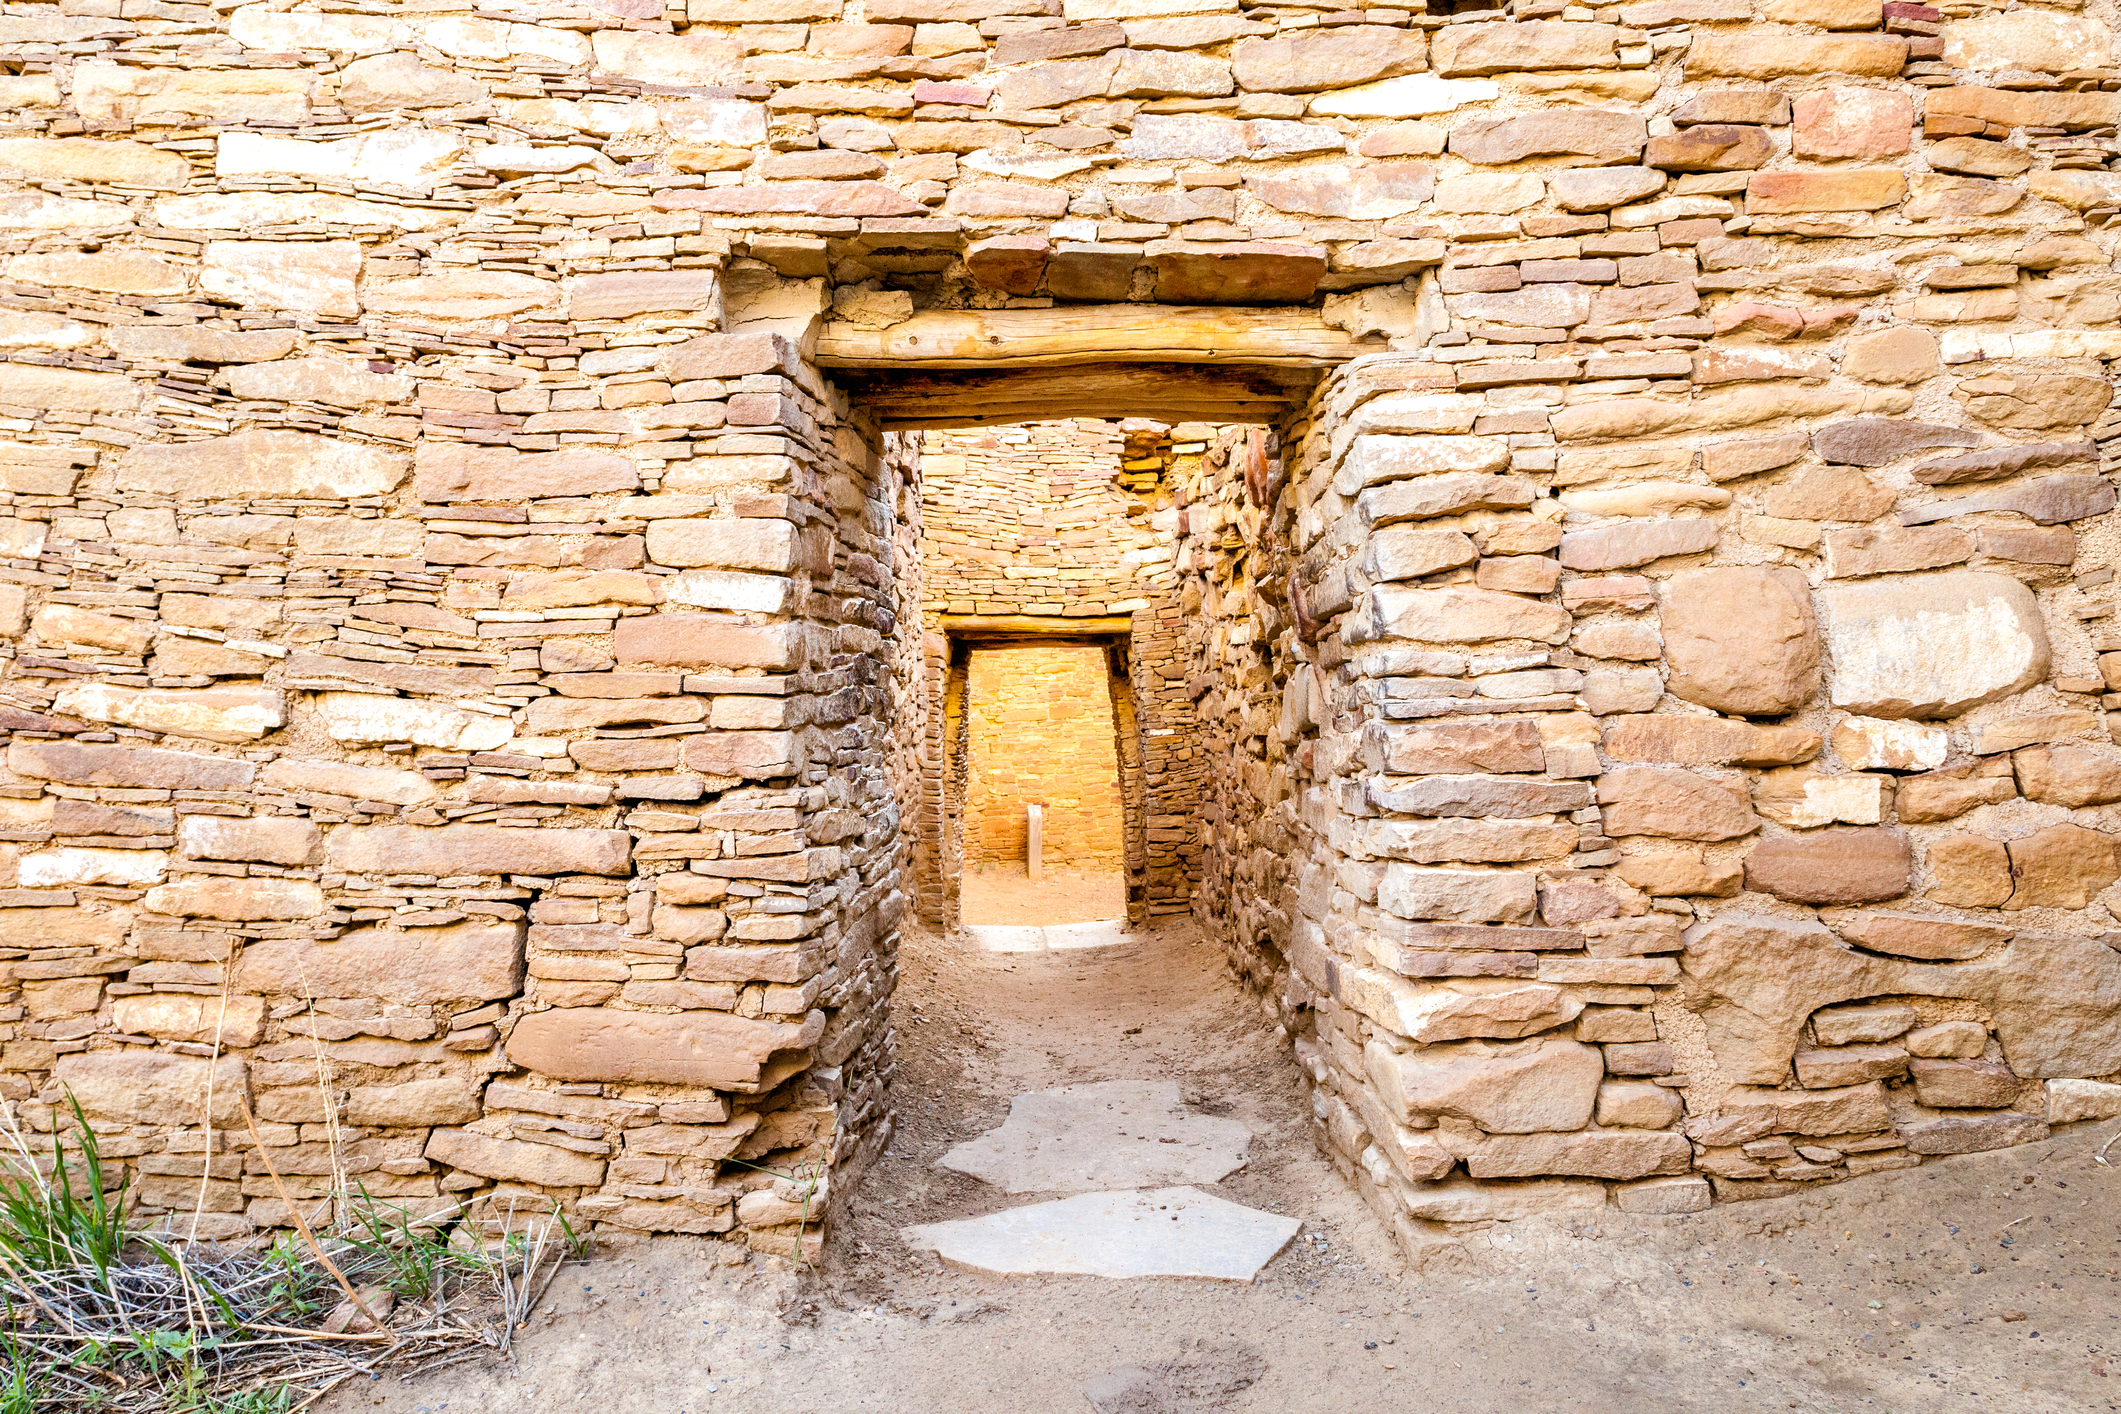 New-Mexico-Chaco-Culture-National-Historical-Park.jpg?mtime=20190405091347#asset:105423